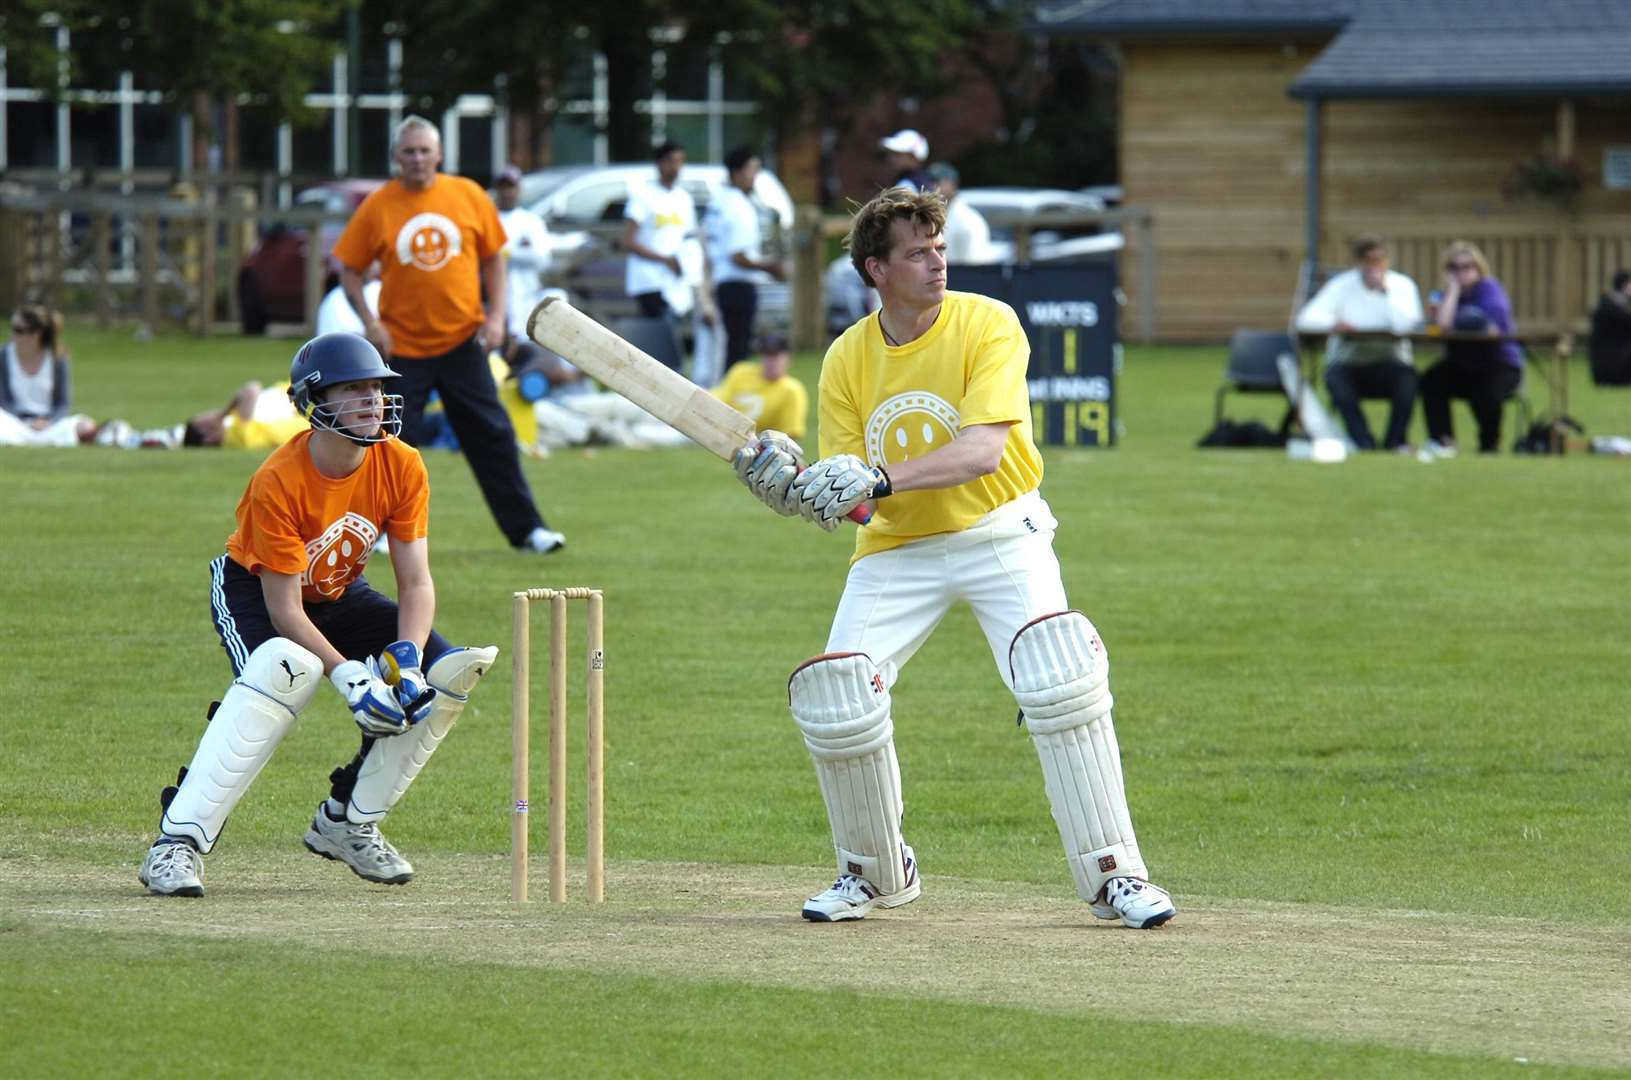 Action from a charity cricket match on The Severals in 2011